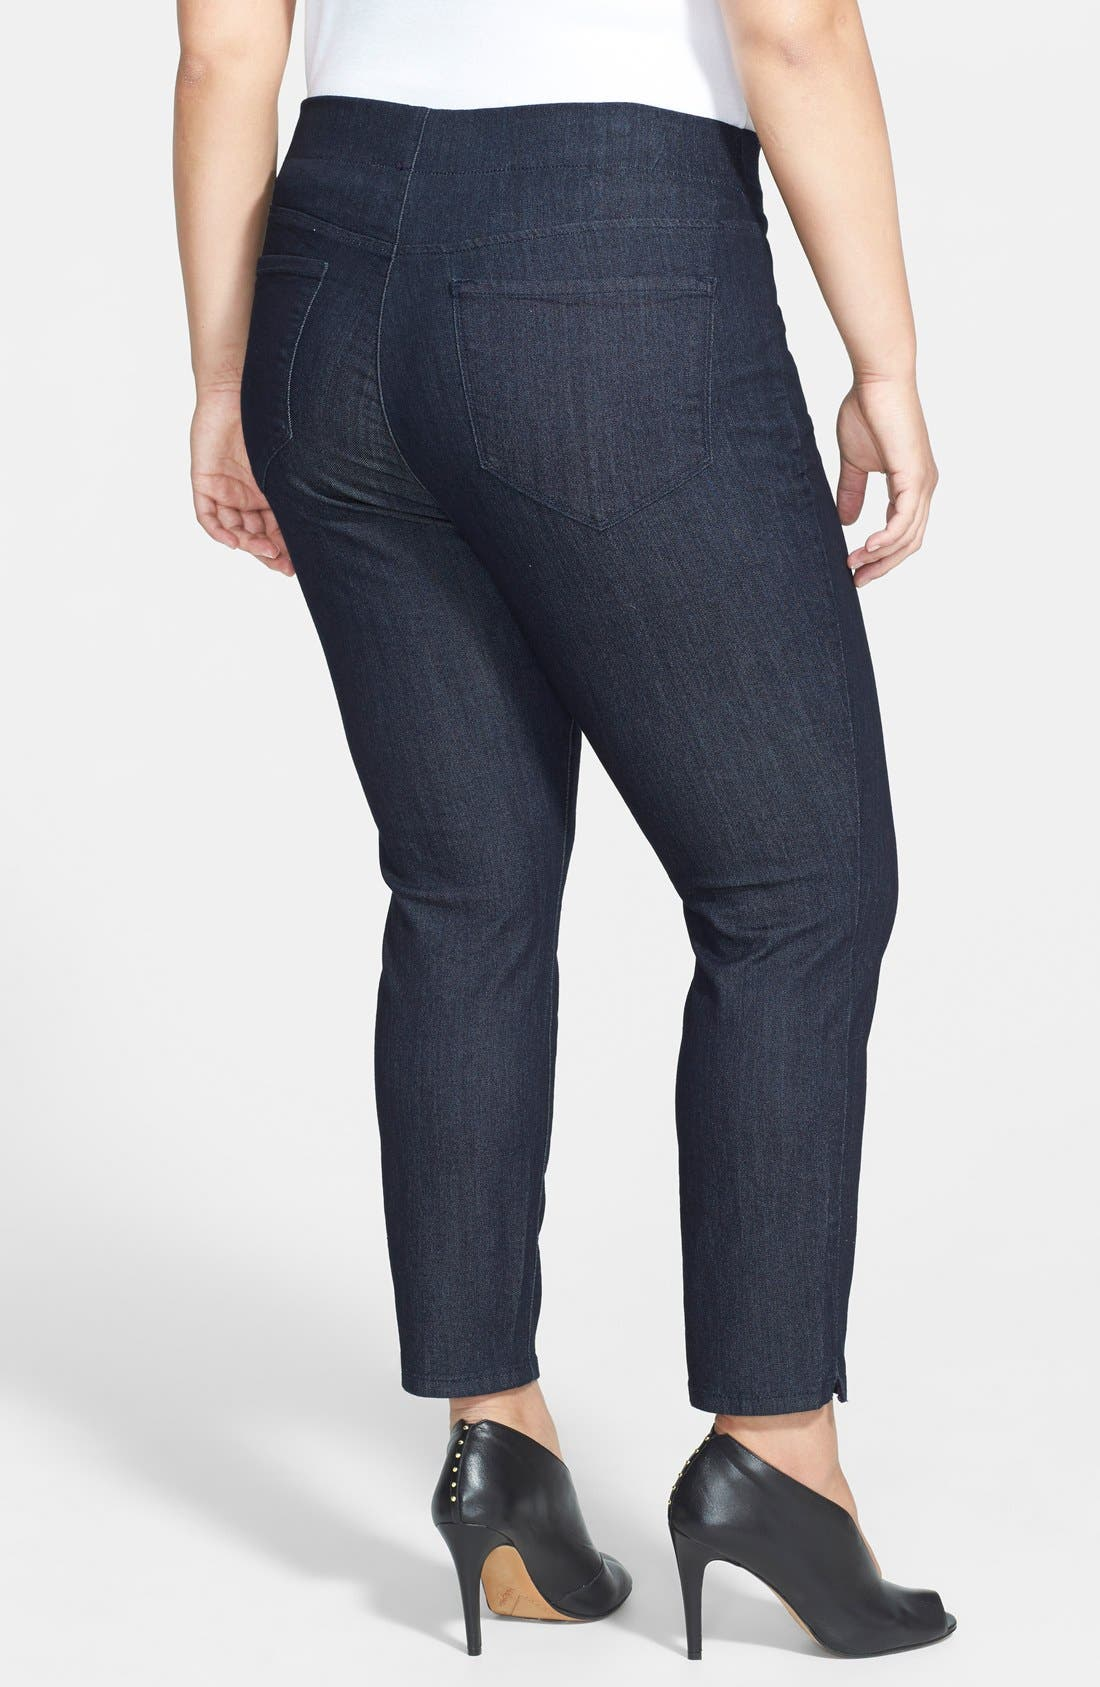 Alternate Image 2  - NYDJ 'Millie' Stretch Ankle Jeans (Dark Enzyme) (Plus Size)